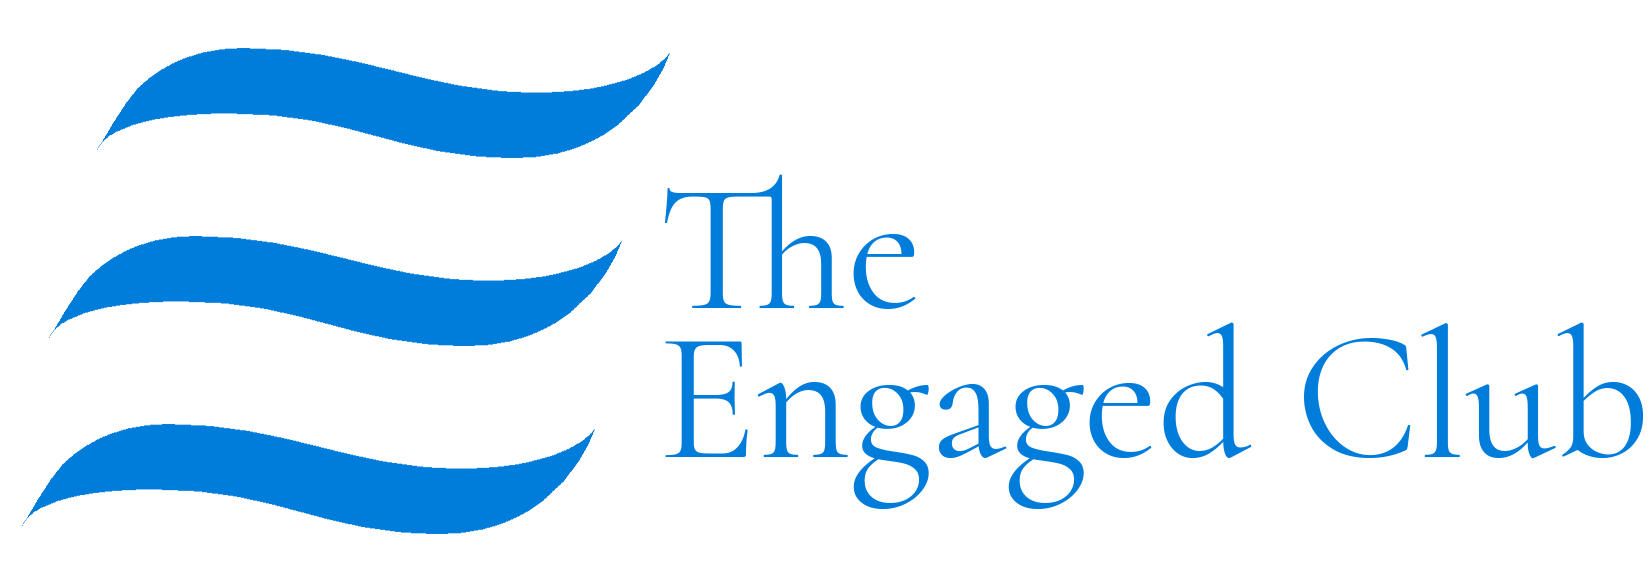 engaged-club-logo-thin